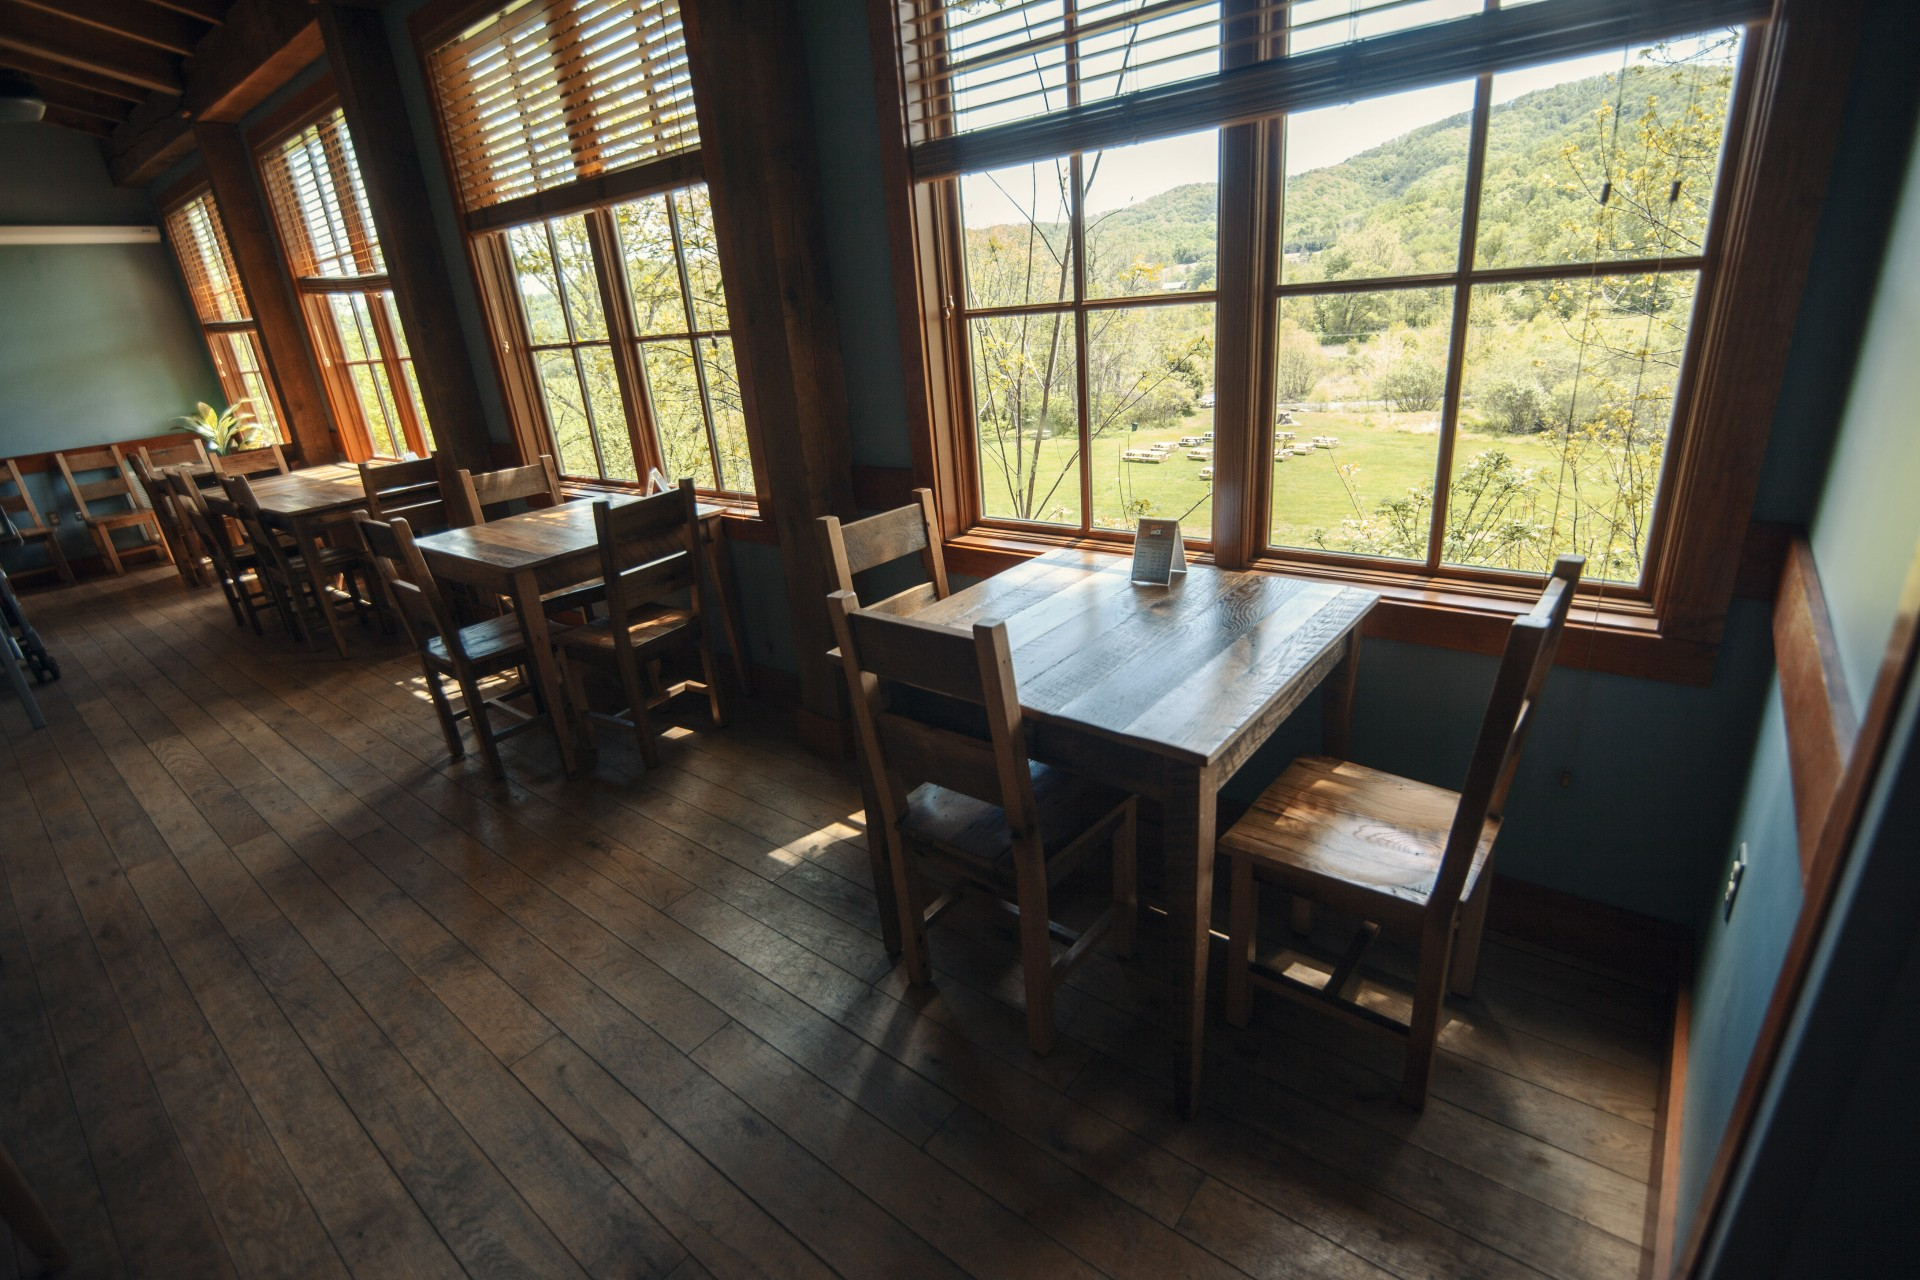 Beau Bold Rock Hard Cider Is Handcrafted From Locally Grown Apples In Virginia  And North Carolina. Rustic Restaurant Furniture Outfitted One Of Their  Beautiful ...